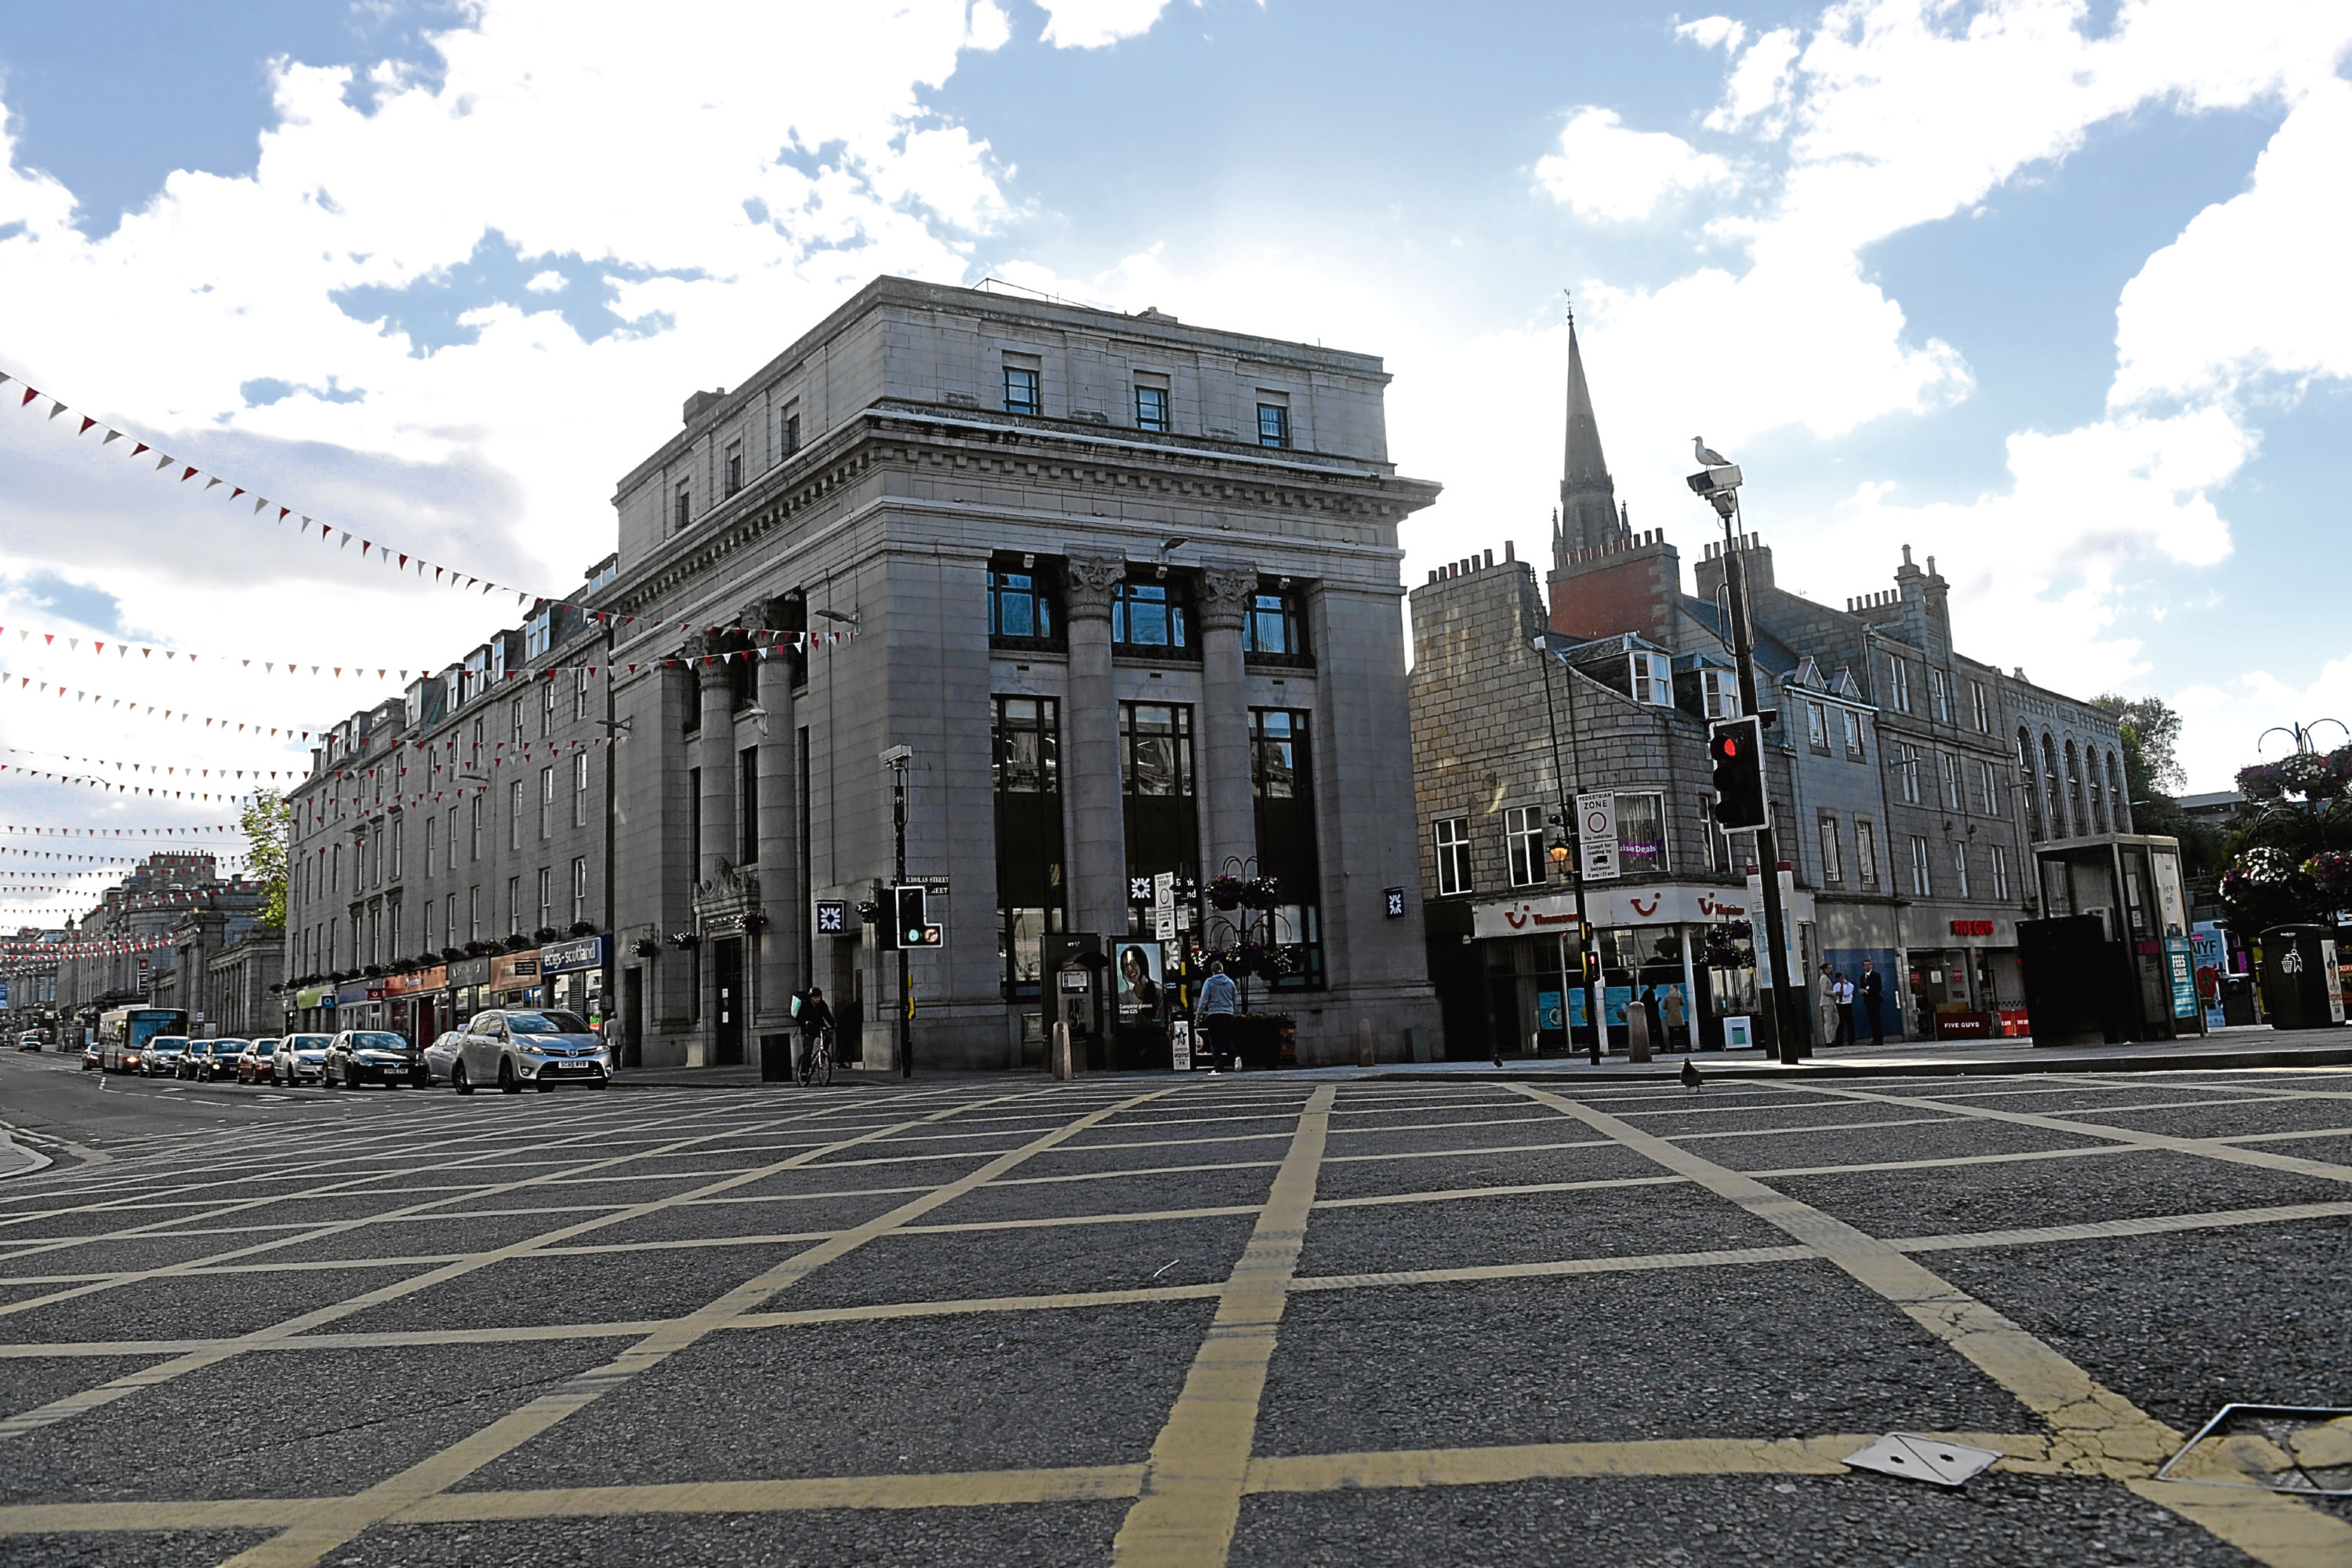 The Polish Association Aberdeen is located on Union Street